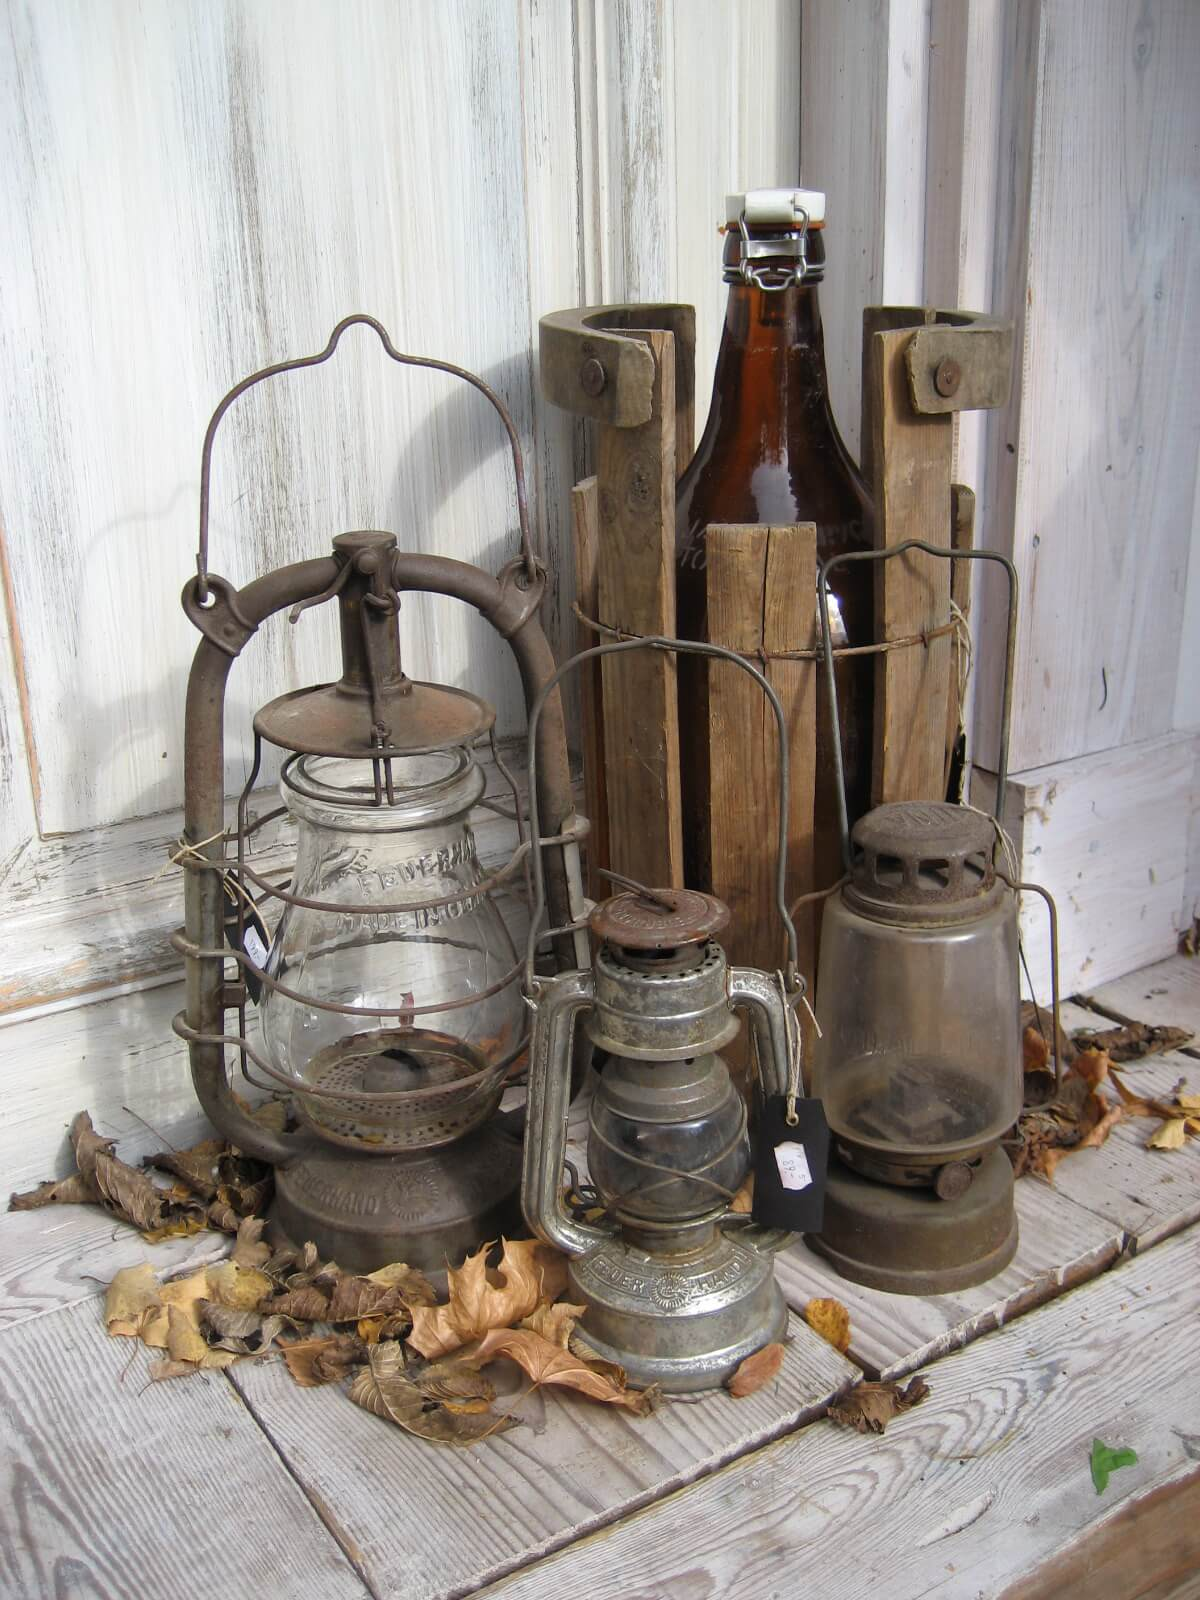 A Cluster of Rusty Lanterns